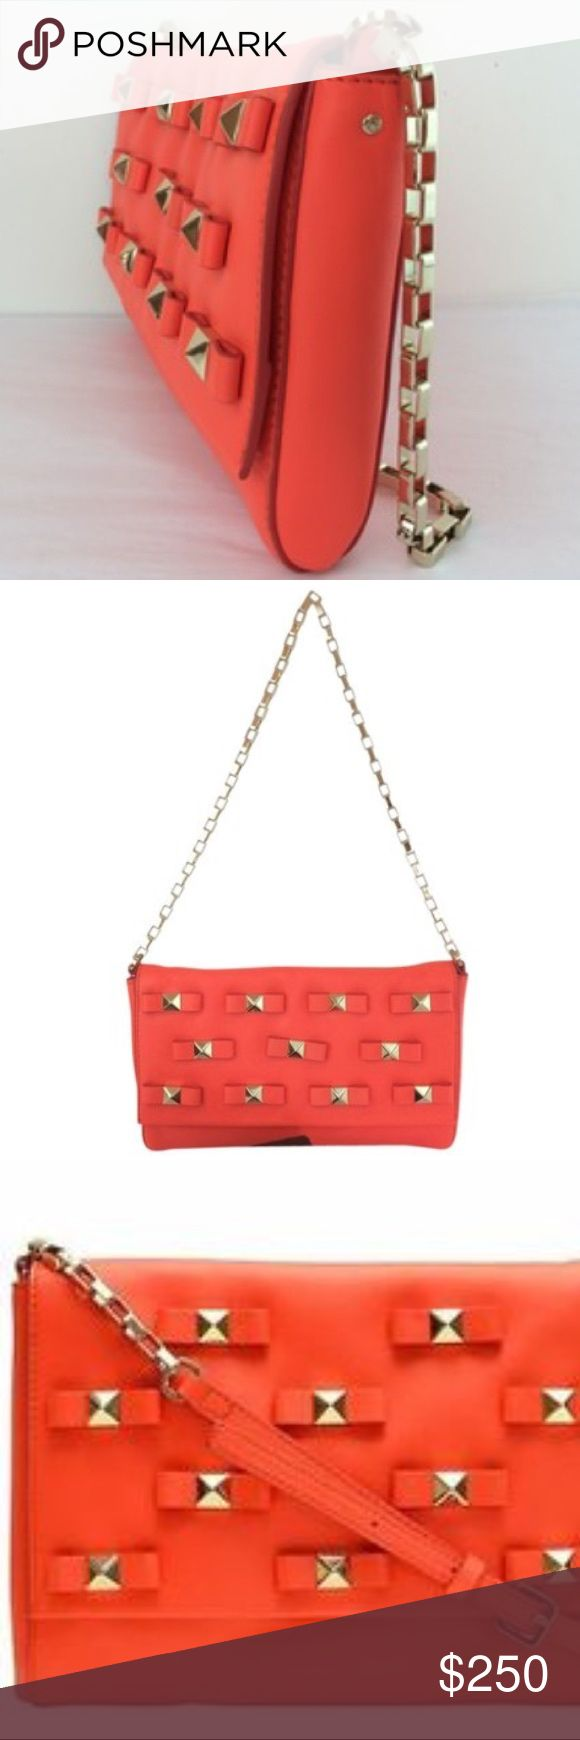 Kate Spade - New York Bow Terrace Leather bag New York Bow Terrace Felisha Leather Maraschino Red Orange Clutch. Like new with dust bag. kate spade Bags Mini Bags